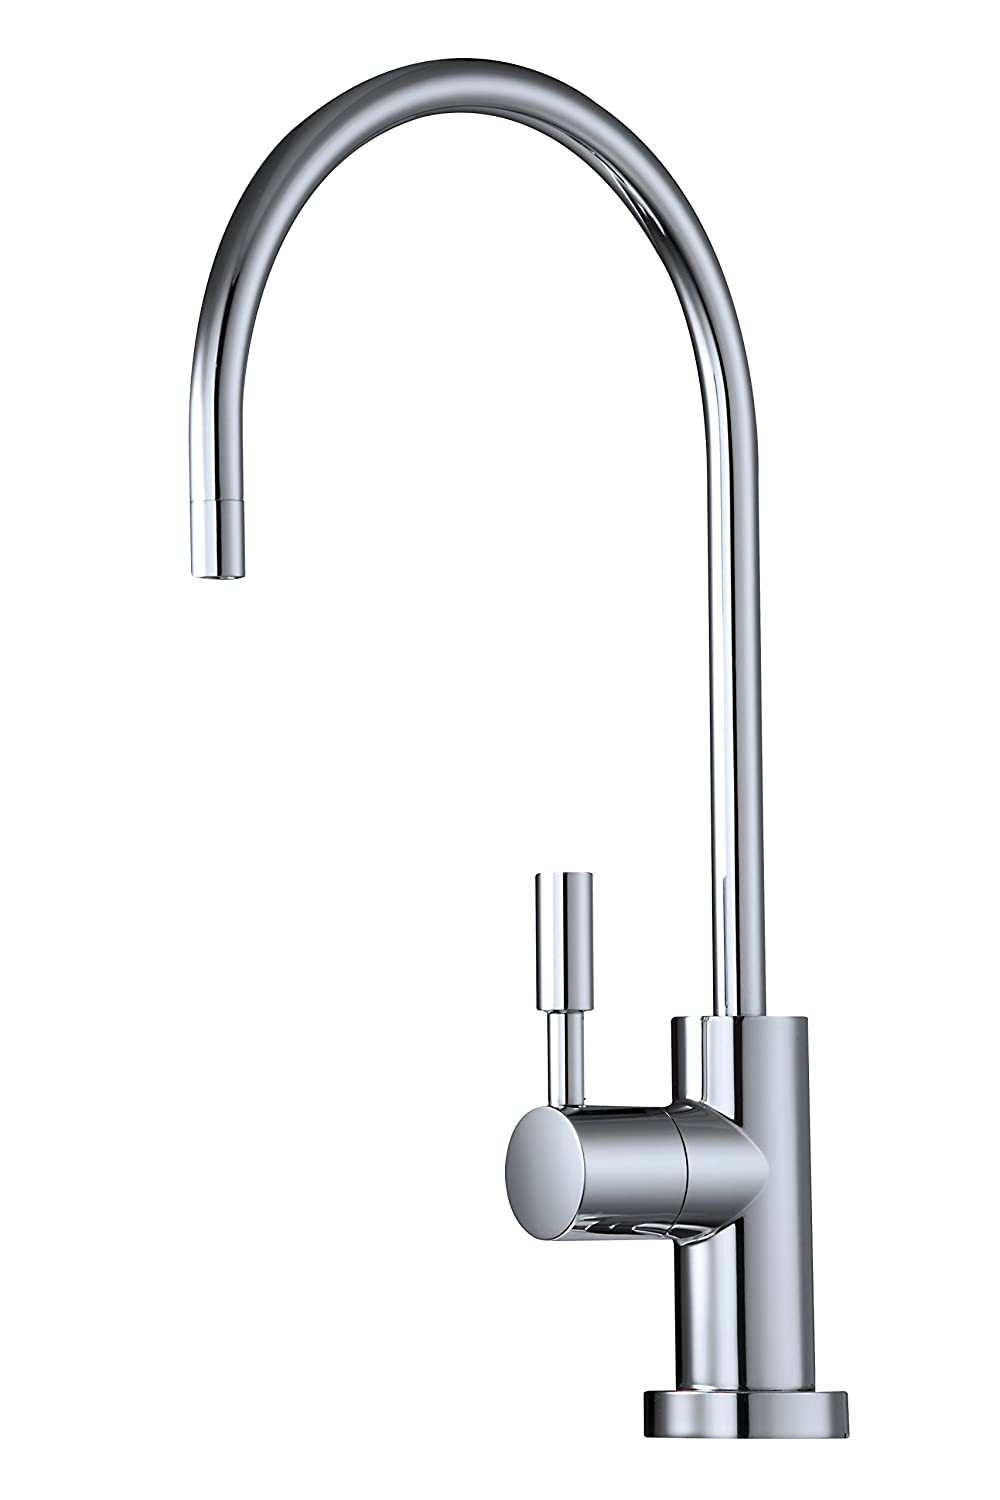 Avanti Designer Kitchen Bar Sink Reverse Osmosis RO Filtration Drinking Water Faucet – NSF certified, ceramic disk, lead-free, non-air gap – RF888-BN Brushed Nickel